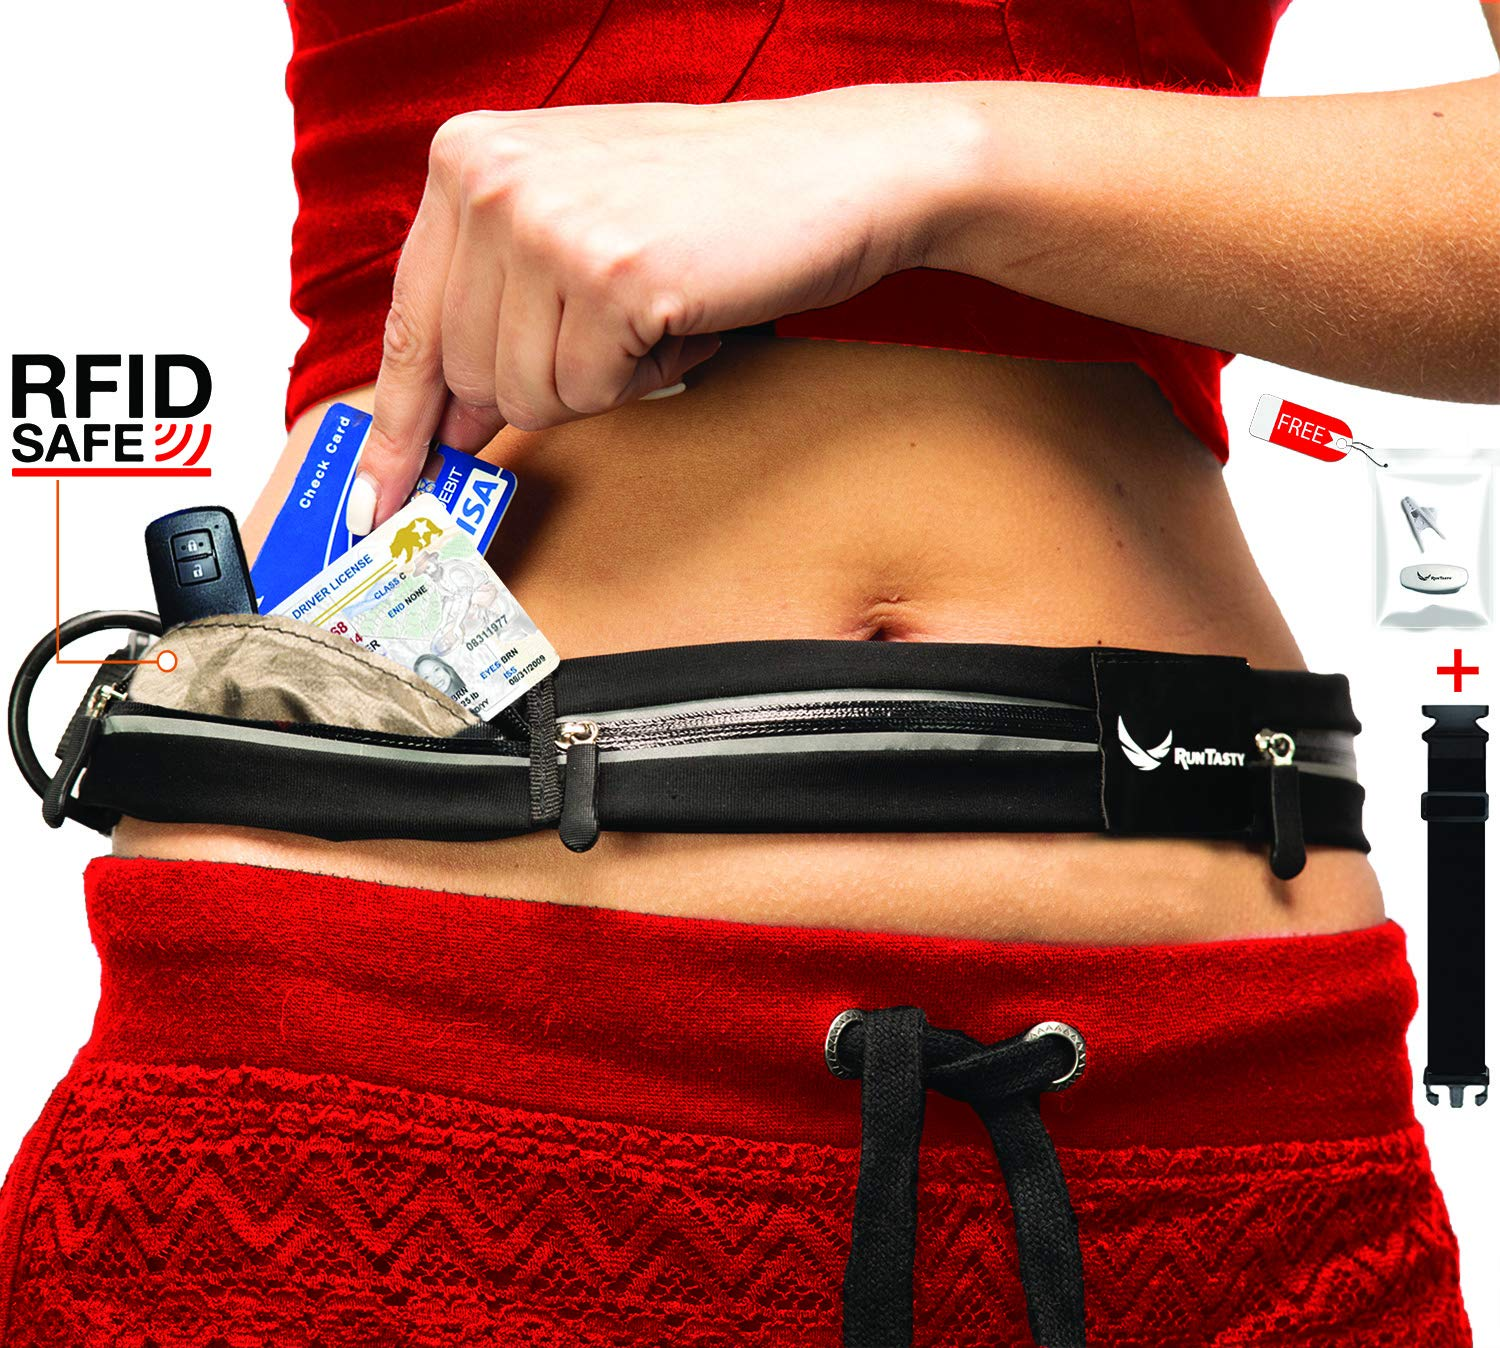 [Voted #1 Running Belt] 3 Pocket Travel Fanny Pack w/RFID Blocking Pouch - fits All iPhone & Samsung Phones - No Bounce, Waterproof, Dog, Fitness & Money Belt! Sleekest, Most Functional in The World! by Runtasty